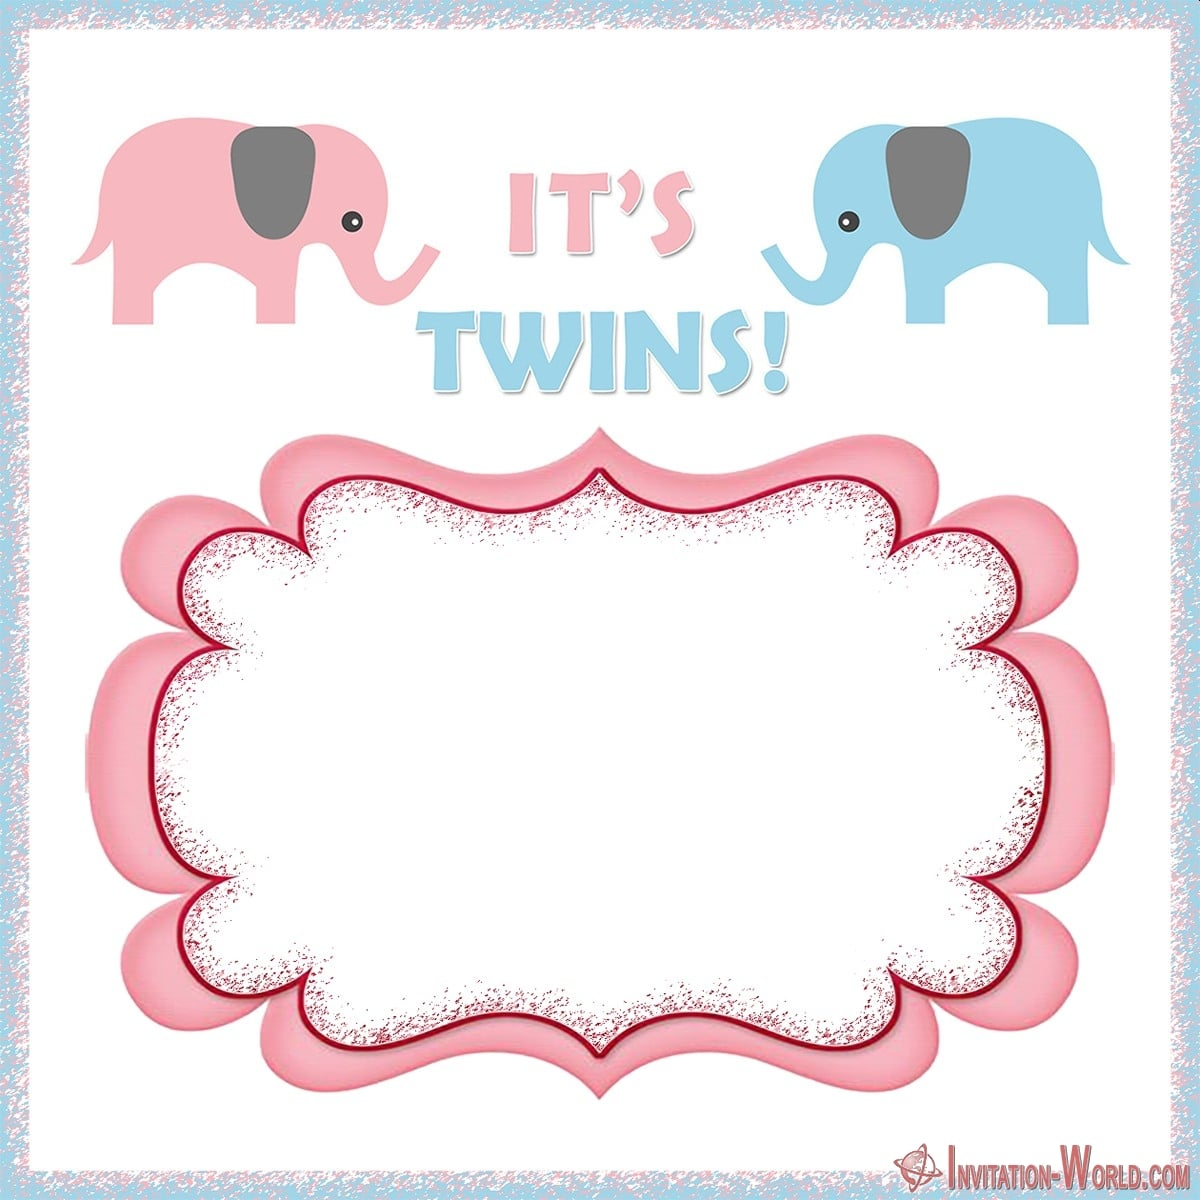 Its twins Baby shower invitation - Couples Shower Invitation Cards